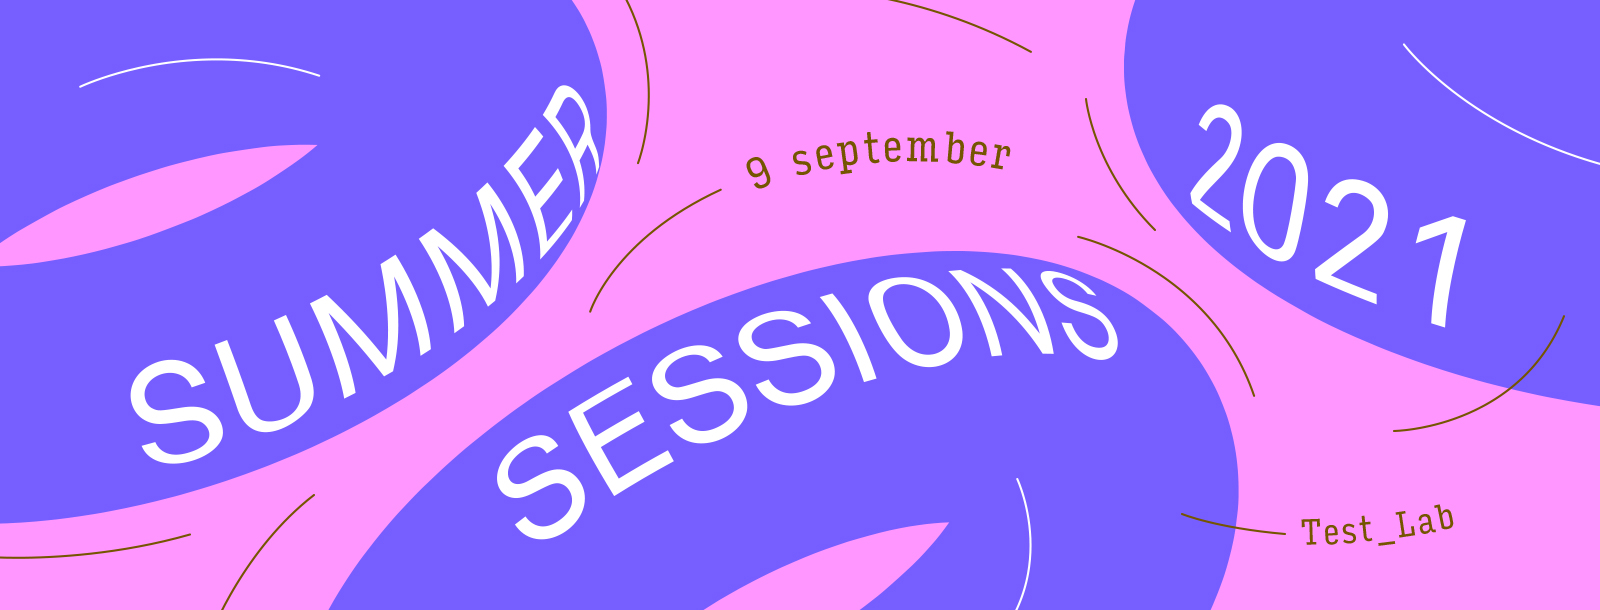 Test_Lab: Summer Sessions 2021